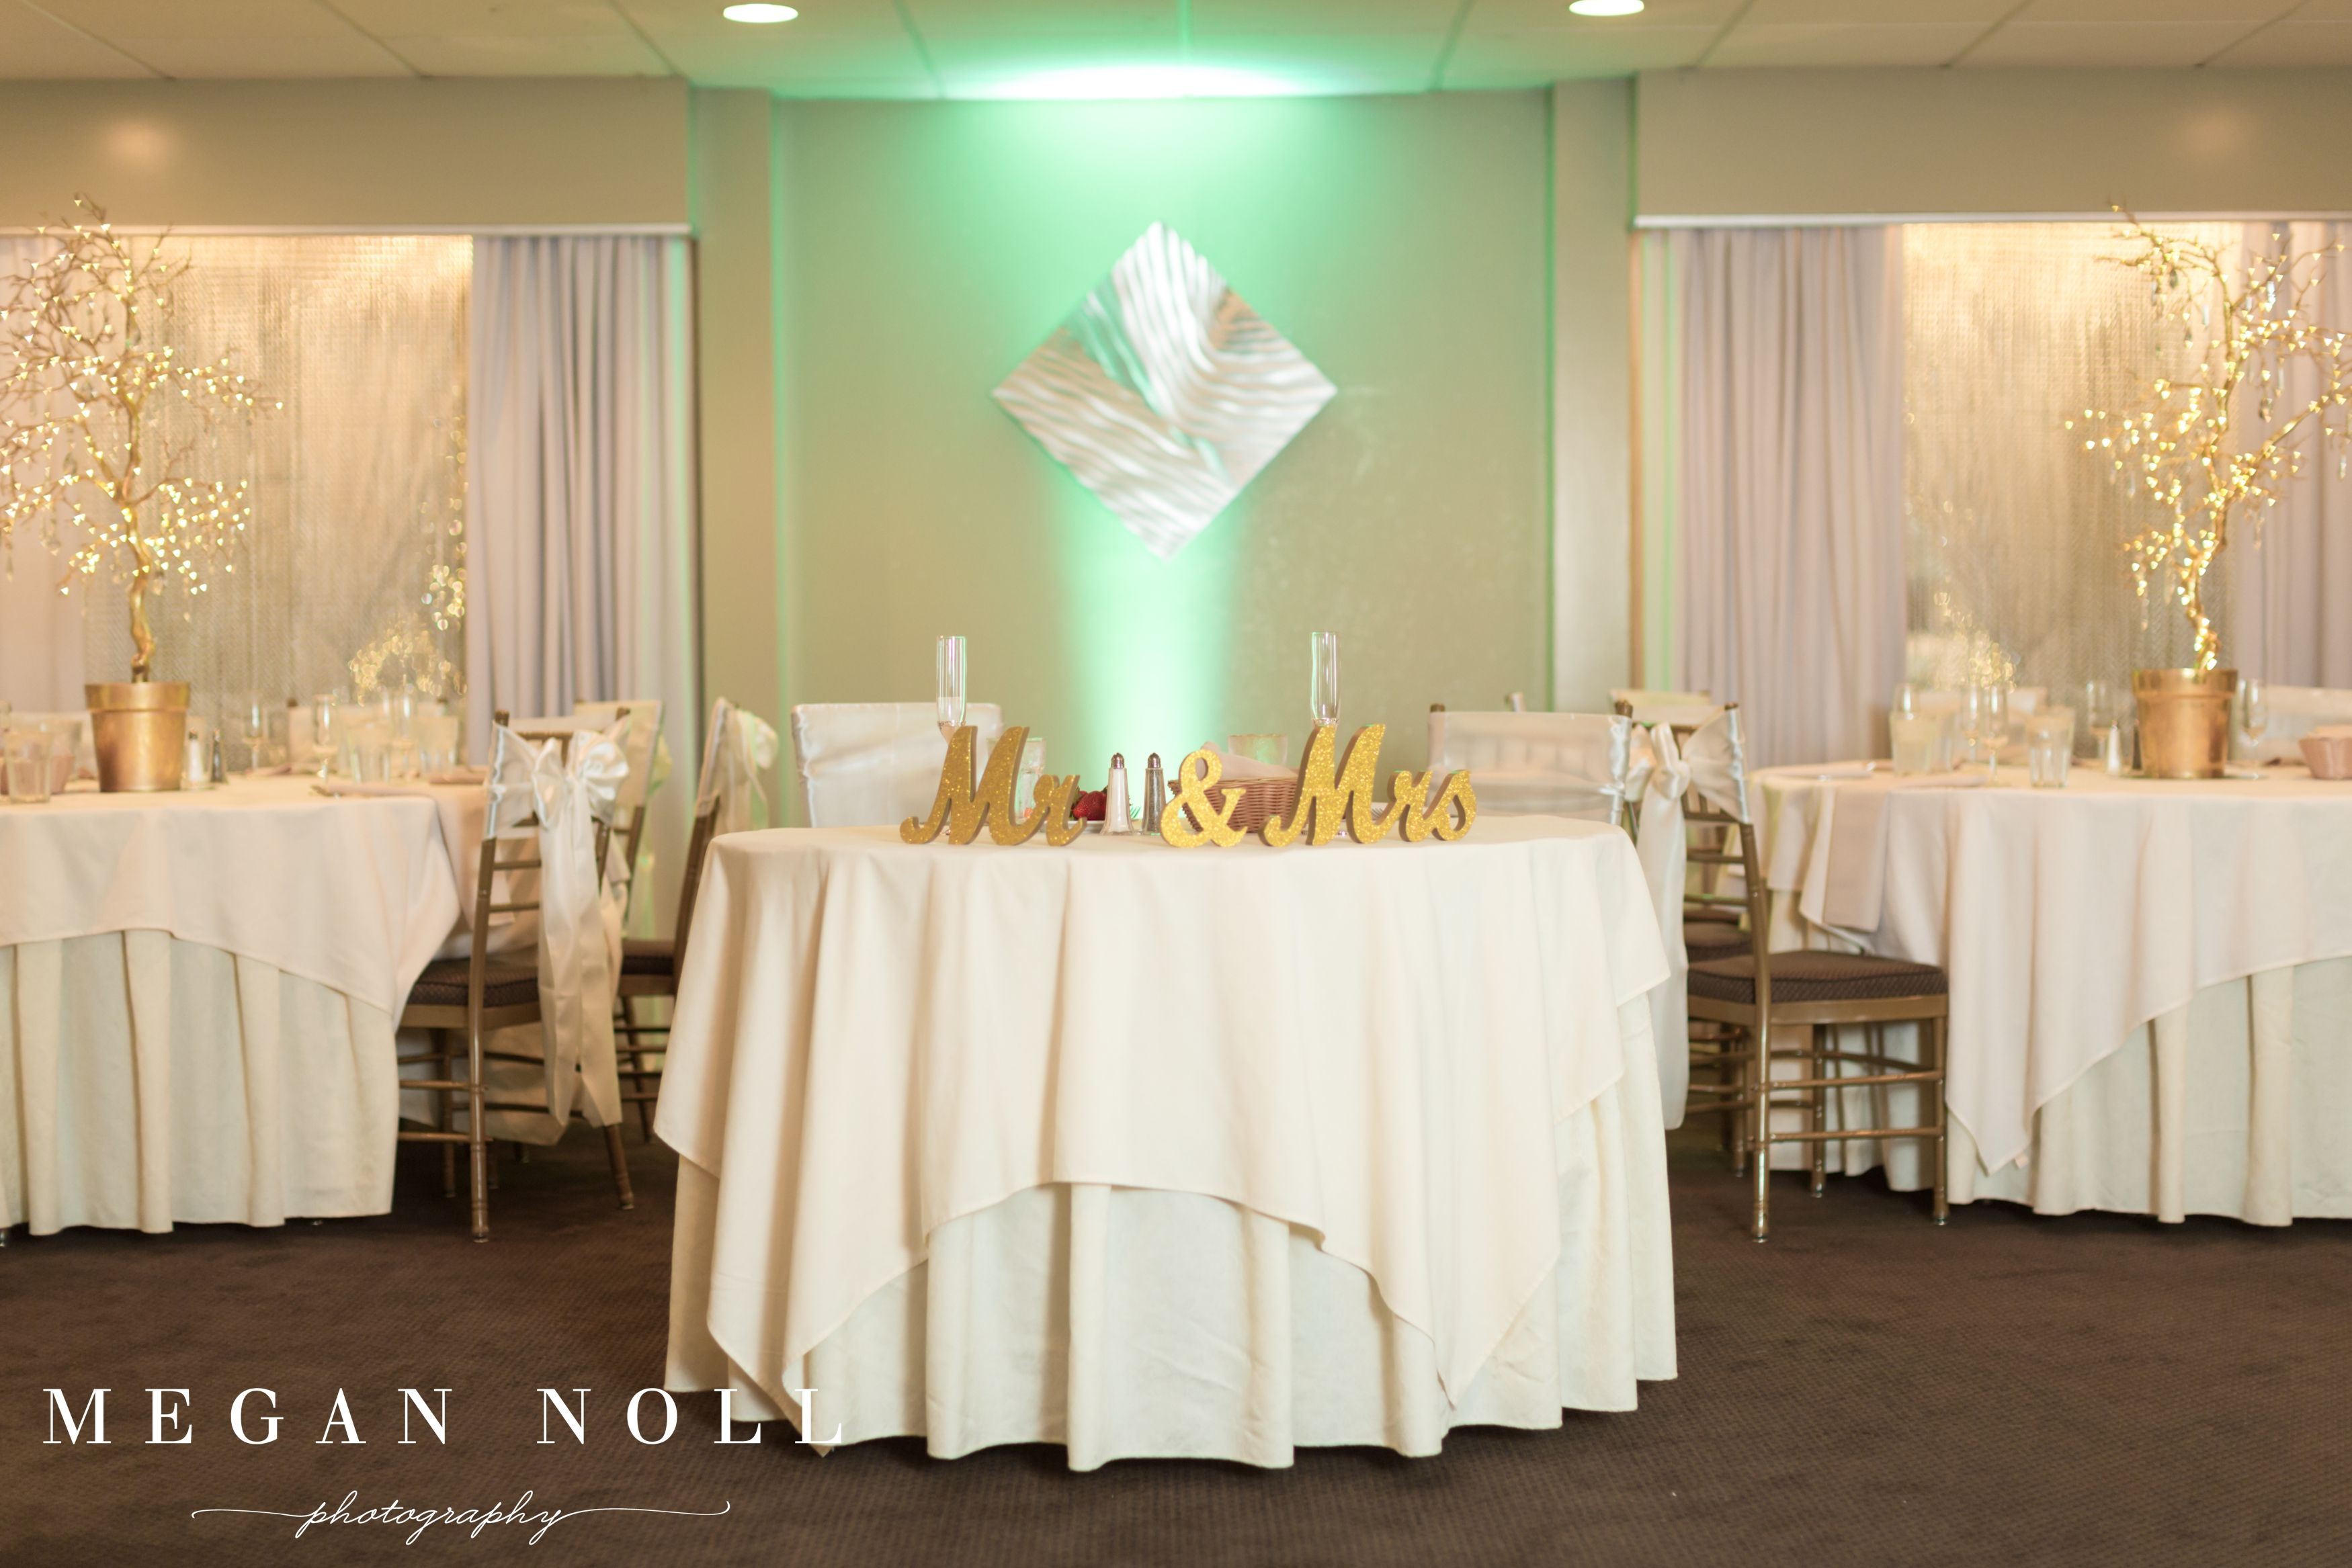 Head table on stage glamorous decor gold decor low ceiling